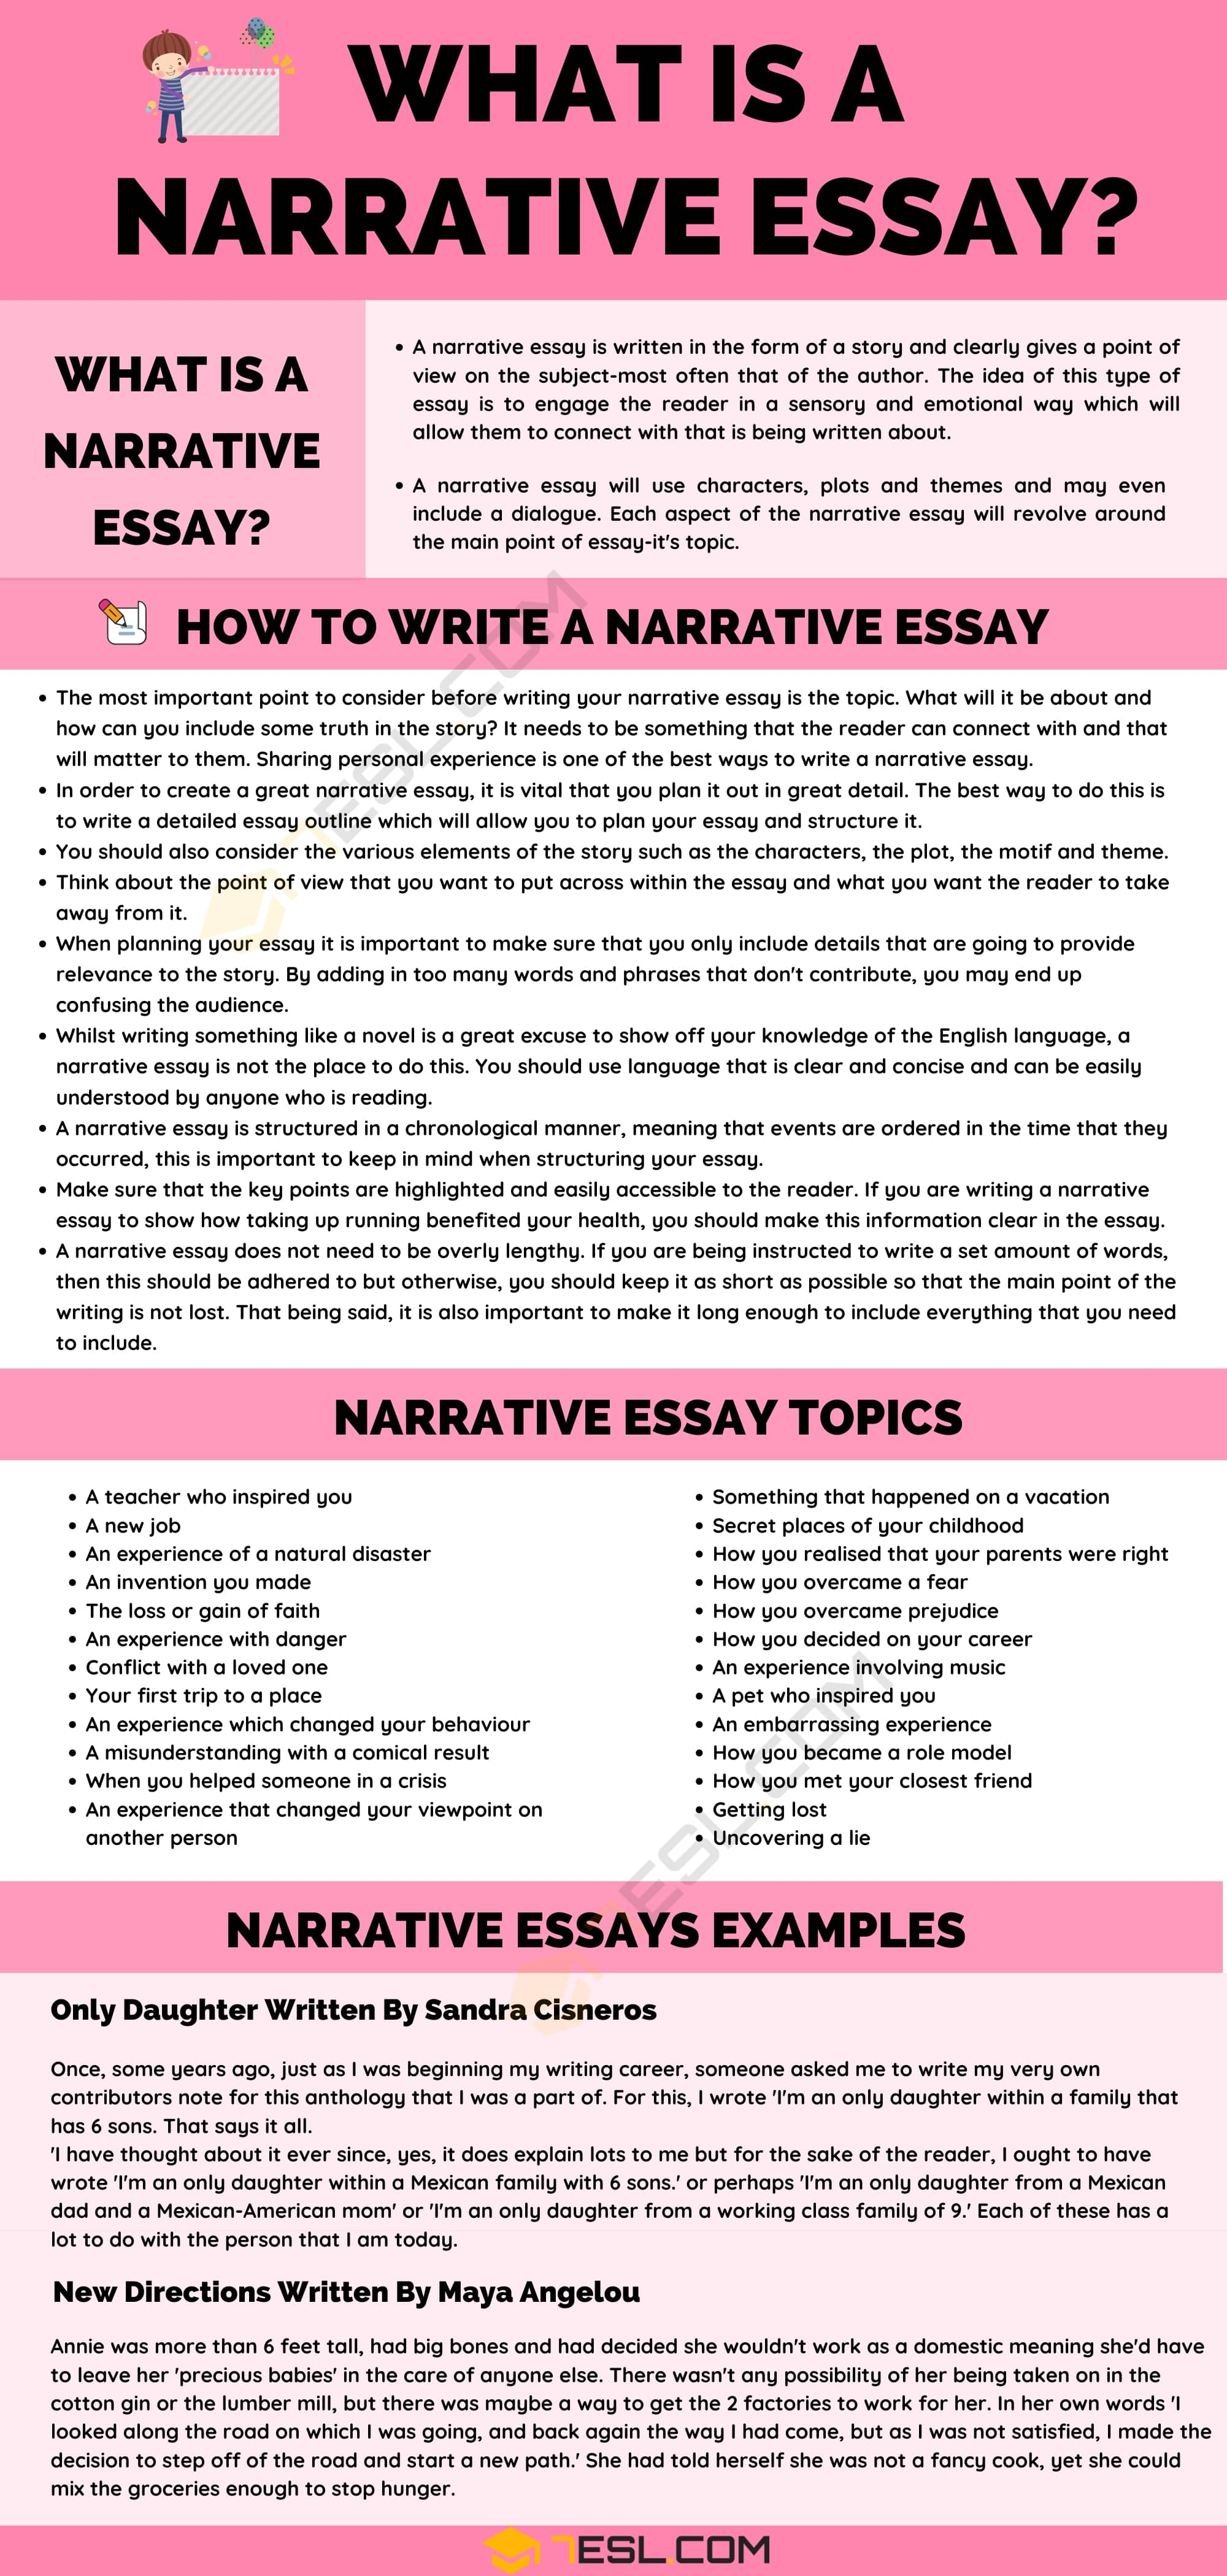 Narrative Essay: Definition, Examples & Useful Tips for Writing a Narrative Essay